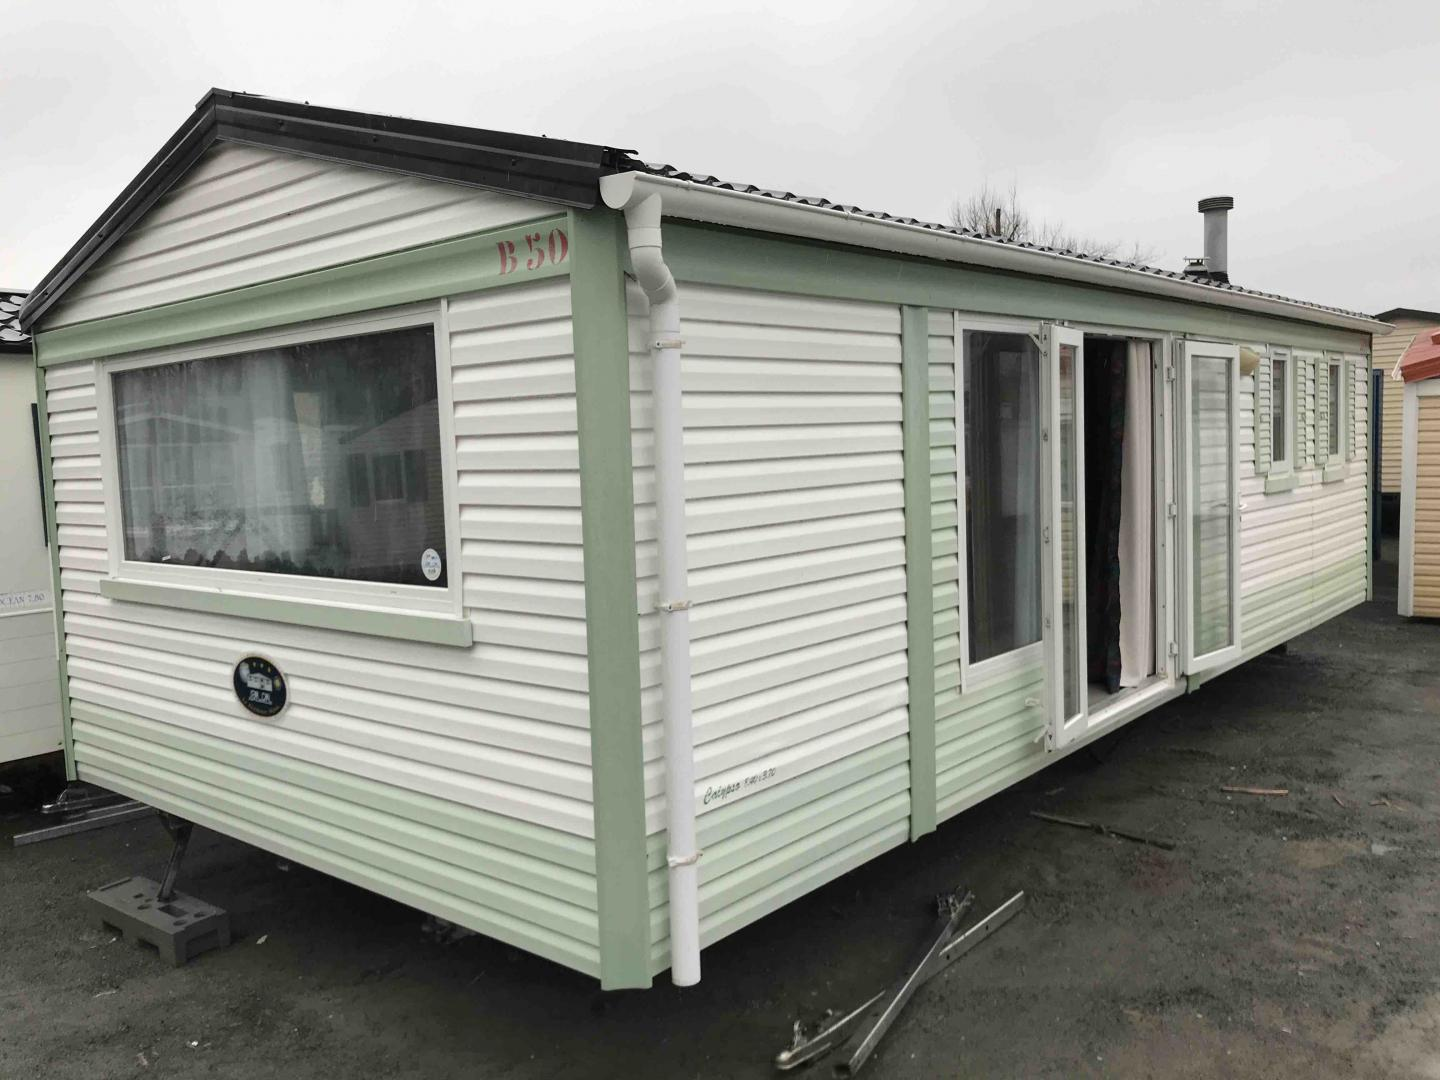 Location mobil home pas cher d'occasion mobil home occasion gard particulier